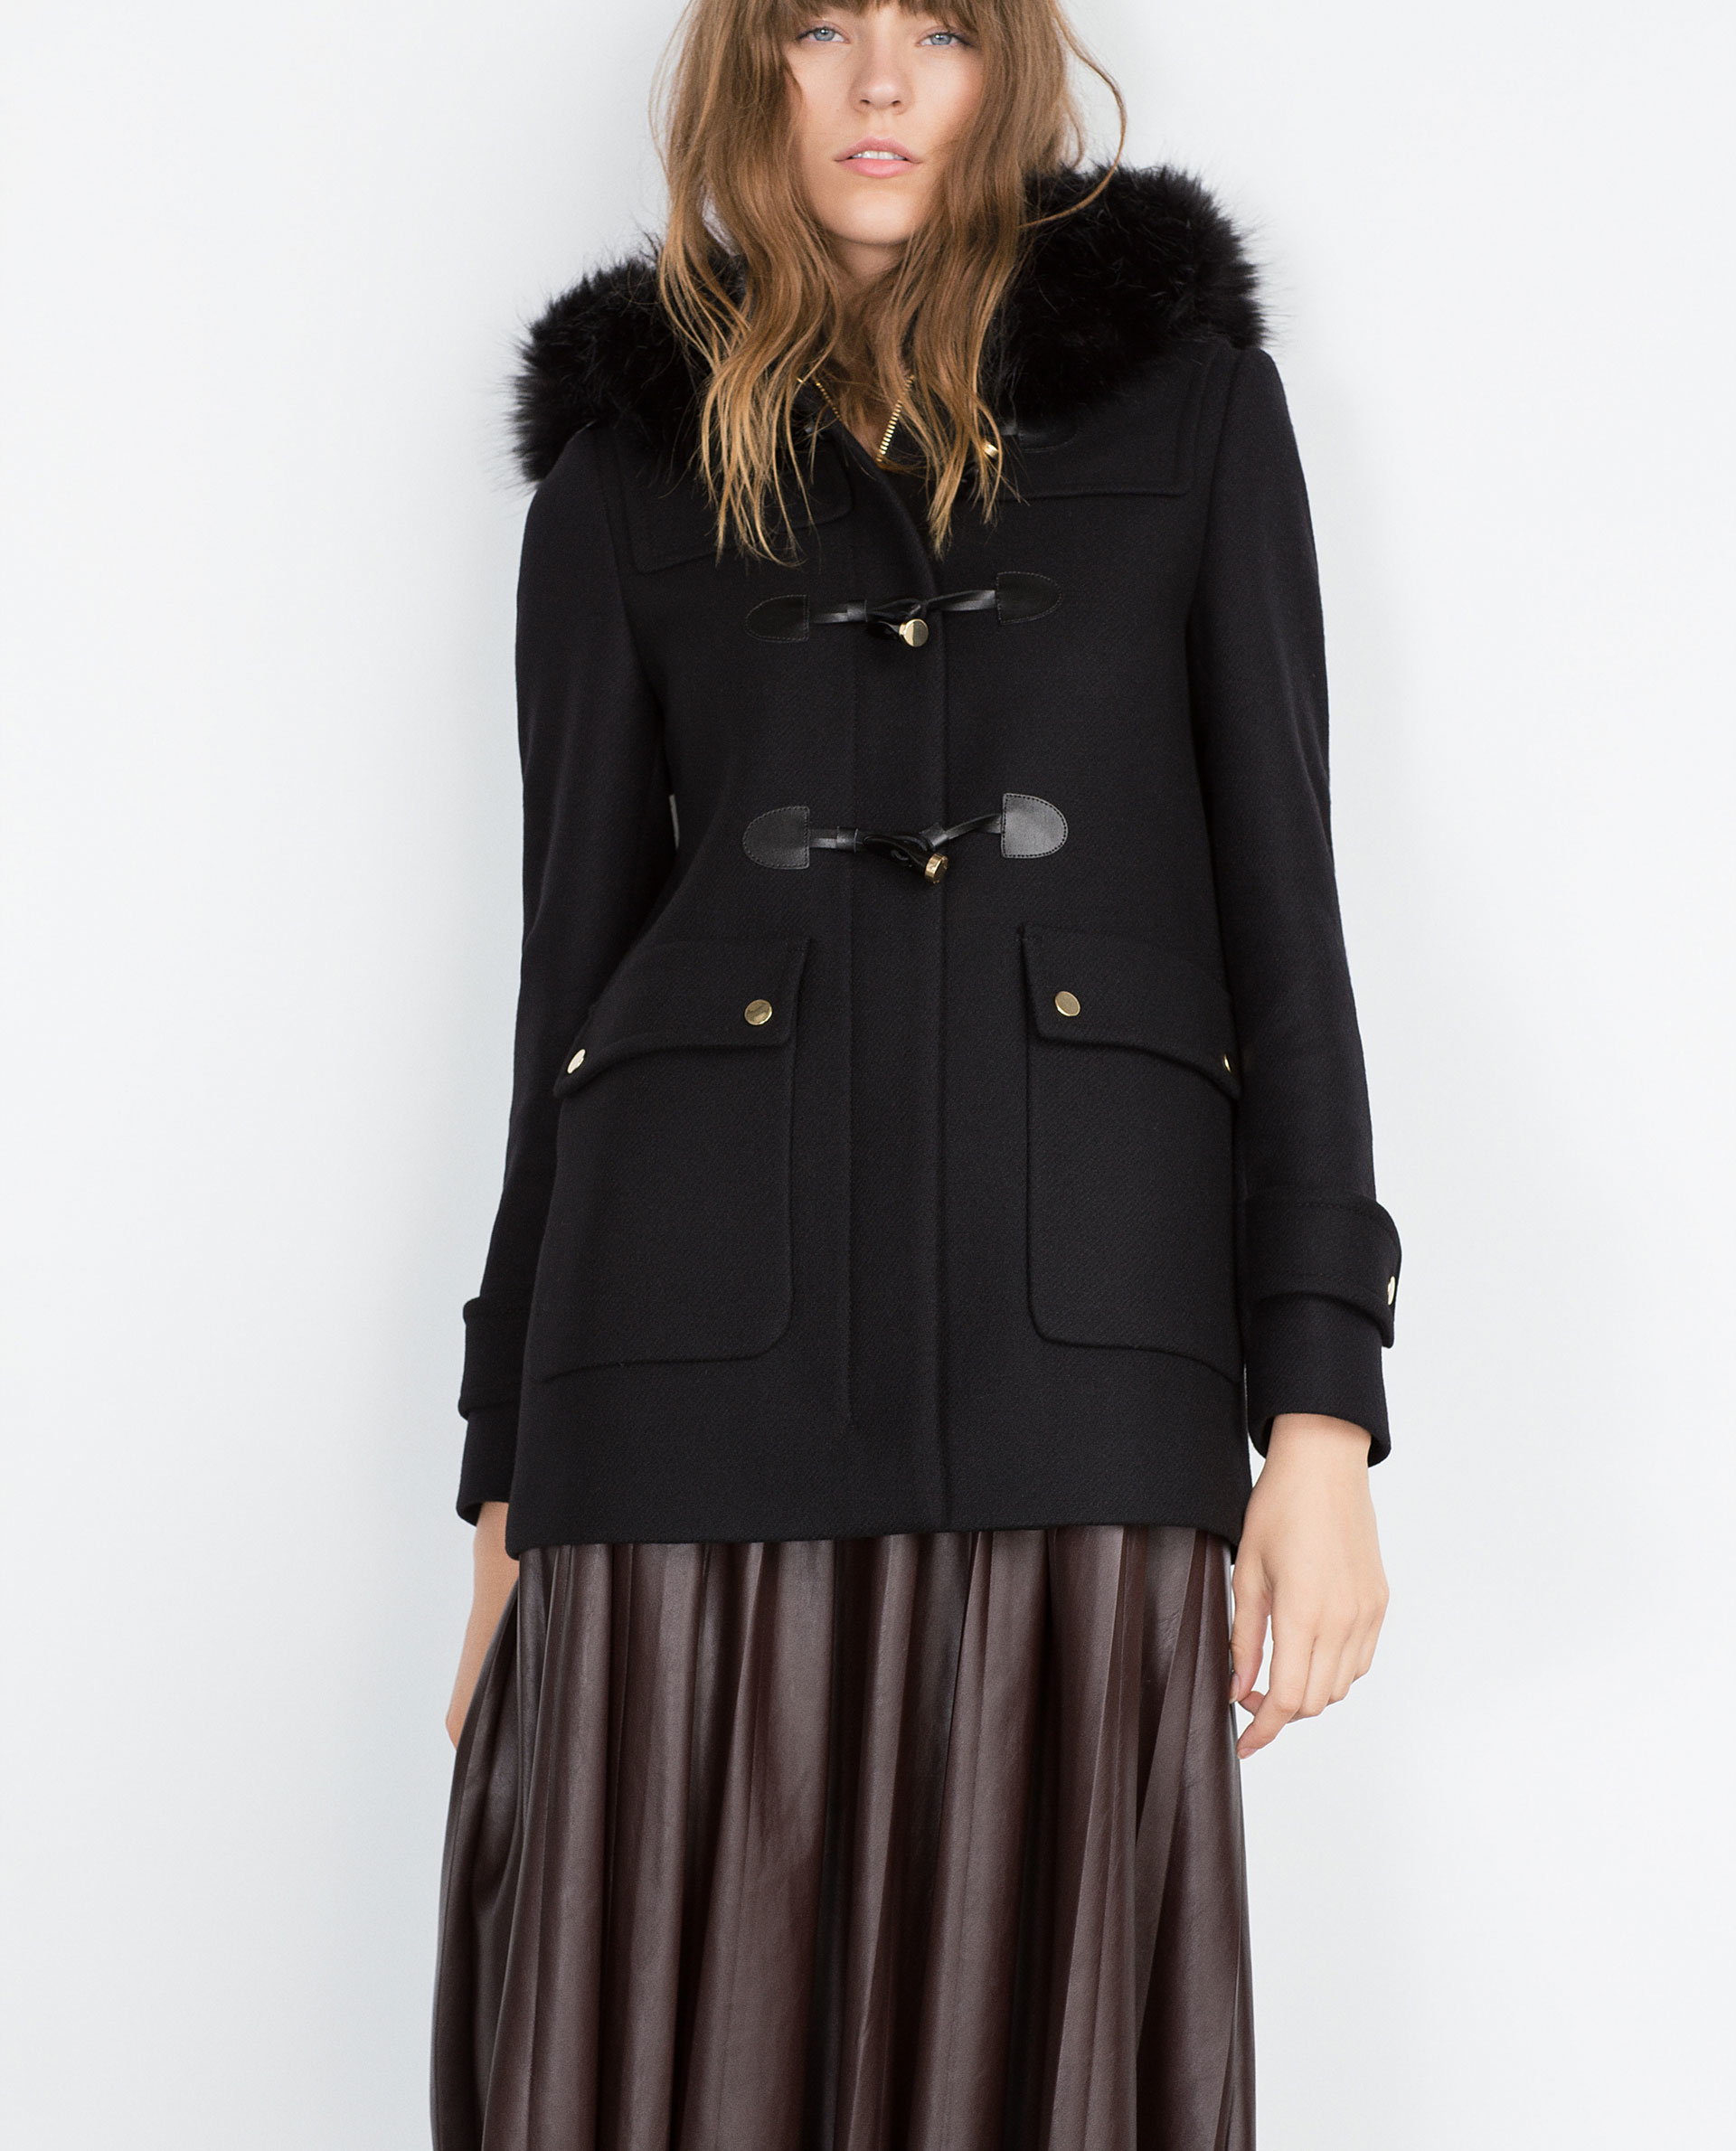 Zara Duffle Coat With Faux Fur Lined Hood in Black | Lyst